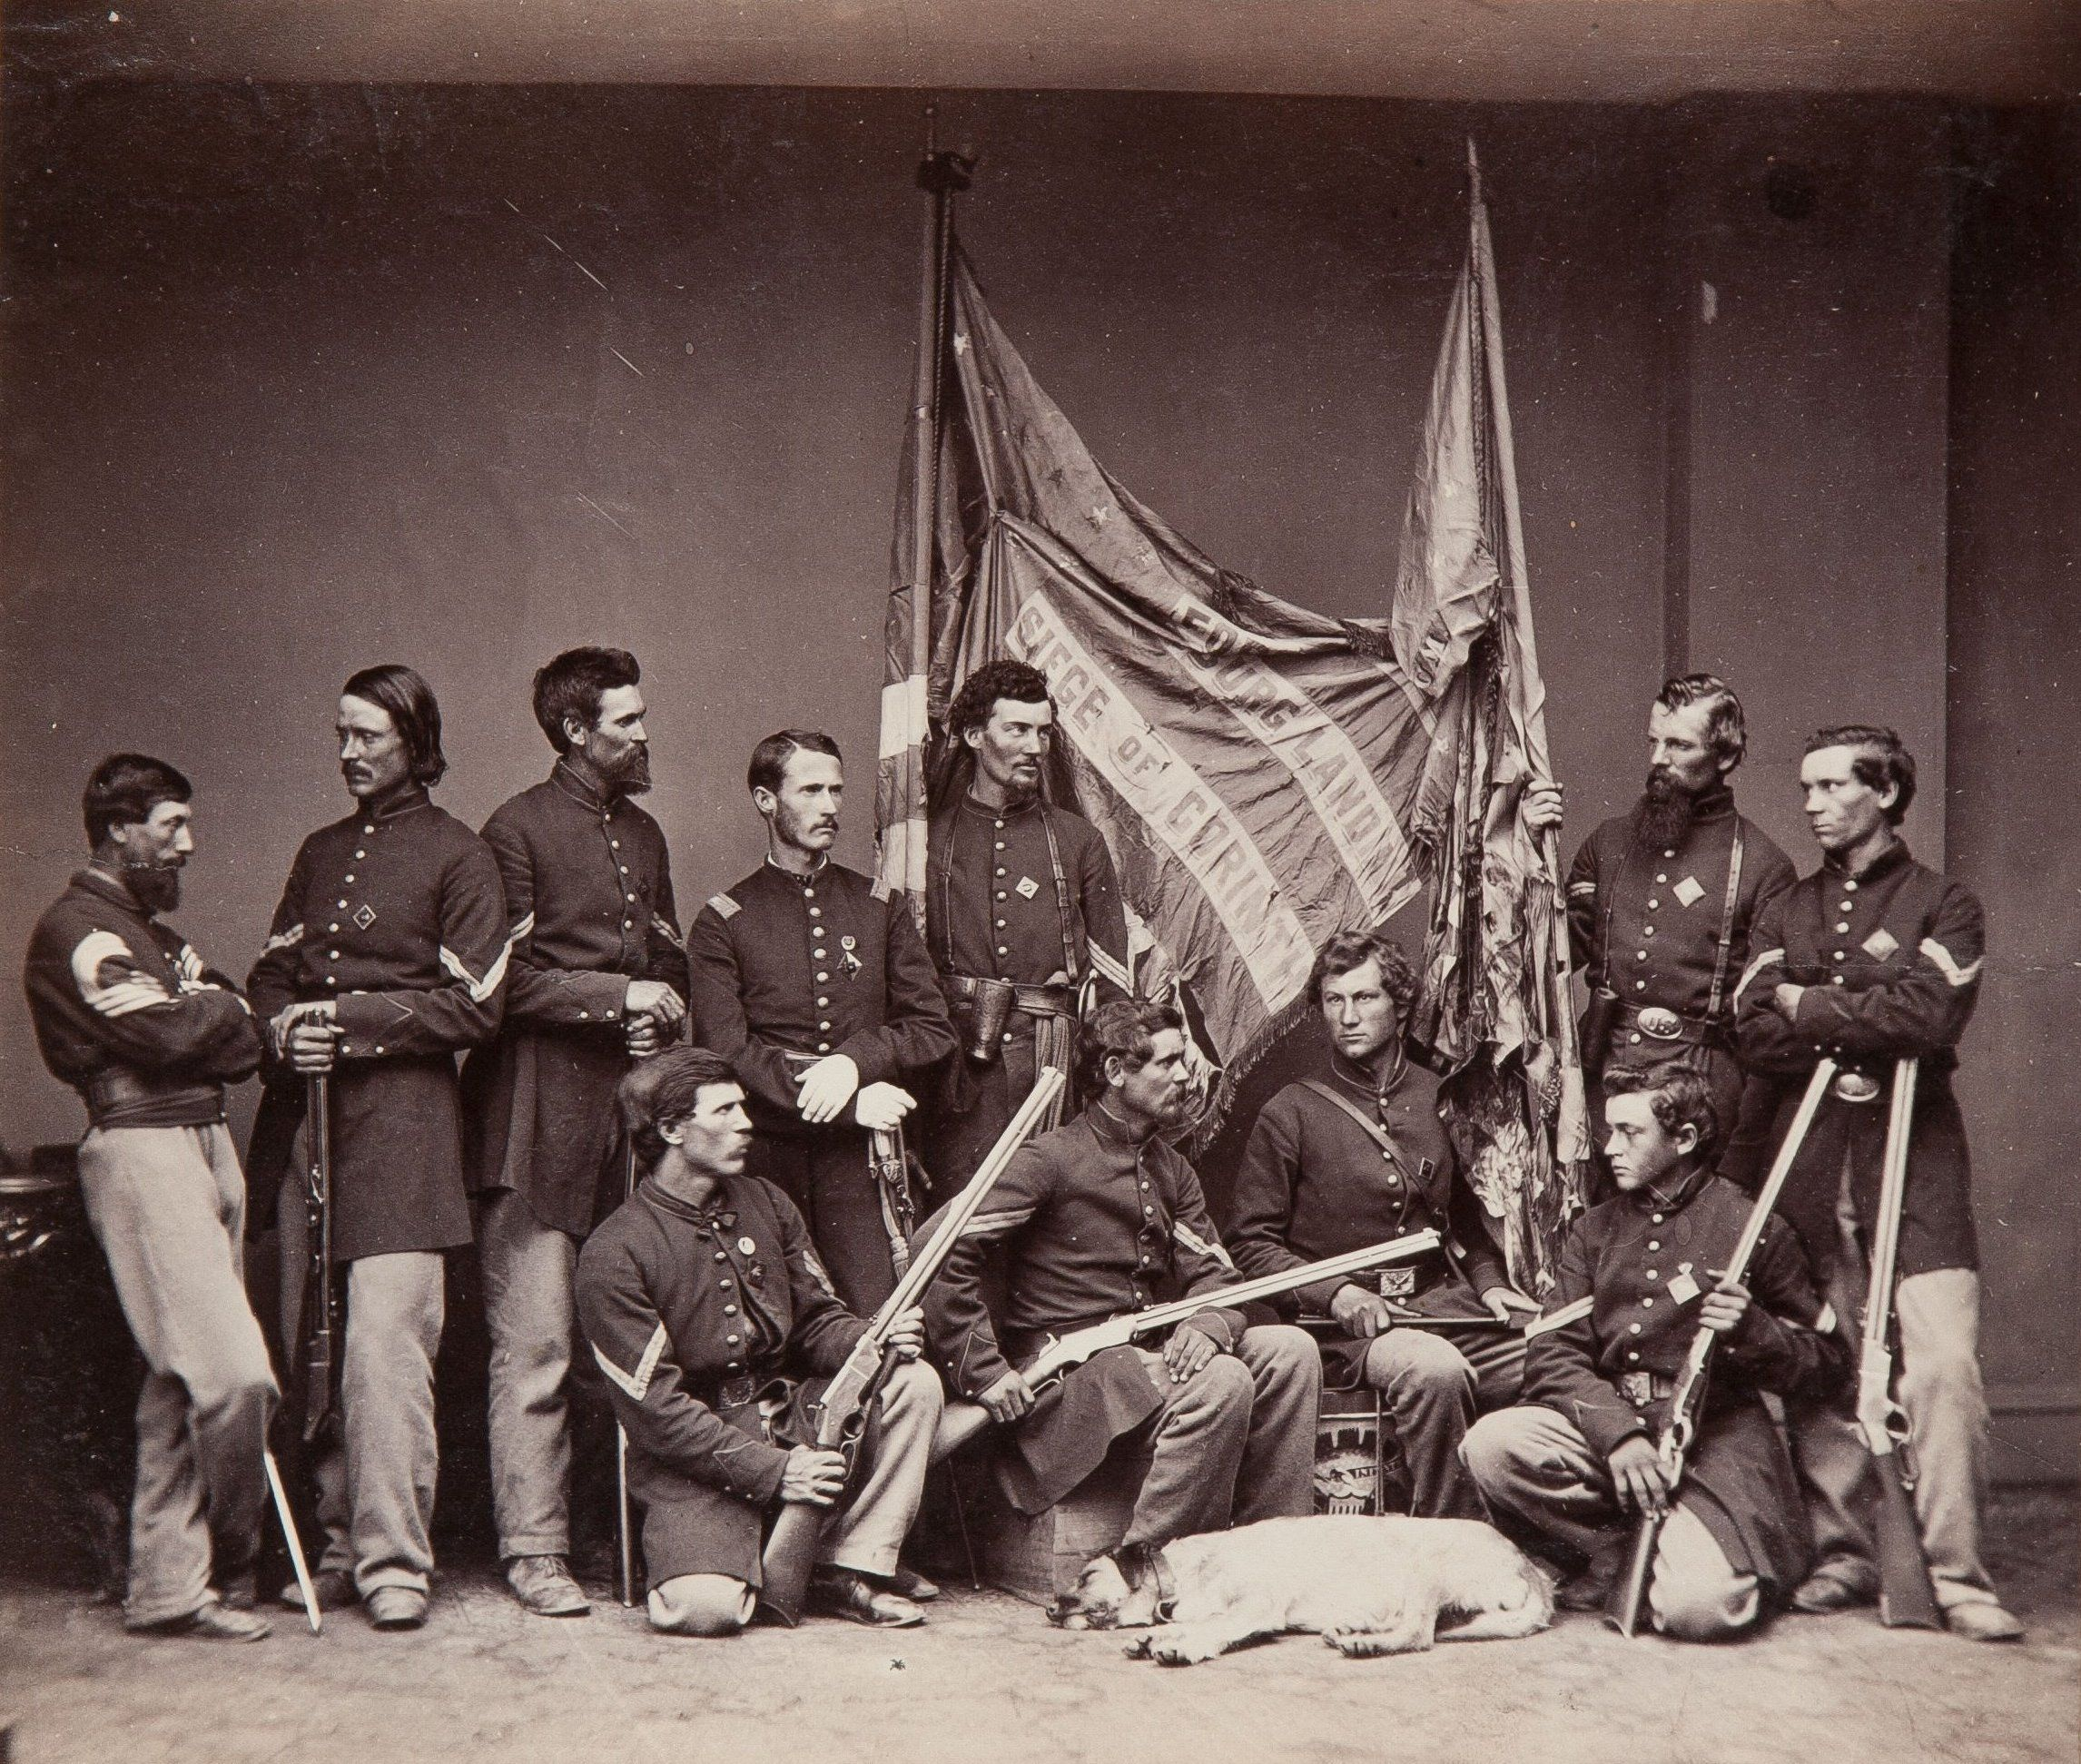 military innovations during the civil war in the us Home learn videos women in the civil war hardships of prisoners of war during the american civil and discusses the innovations in medical.